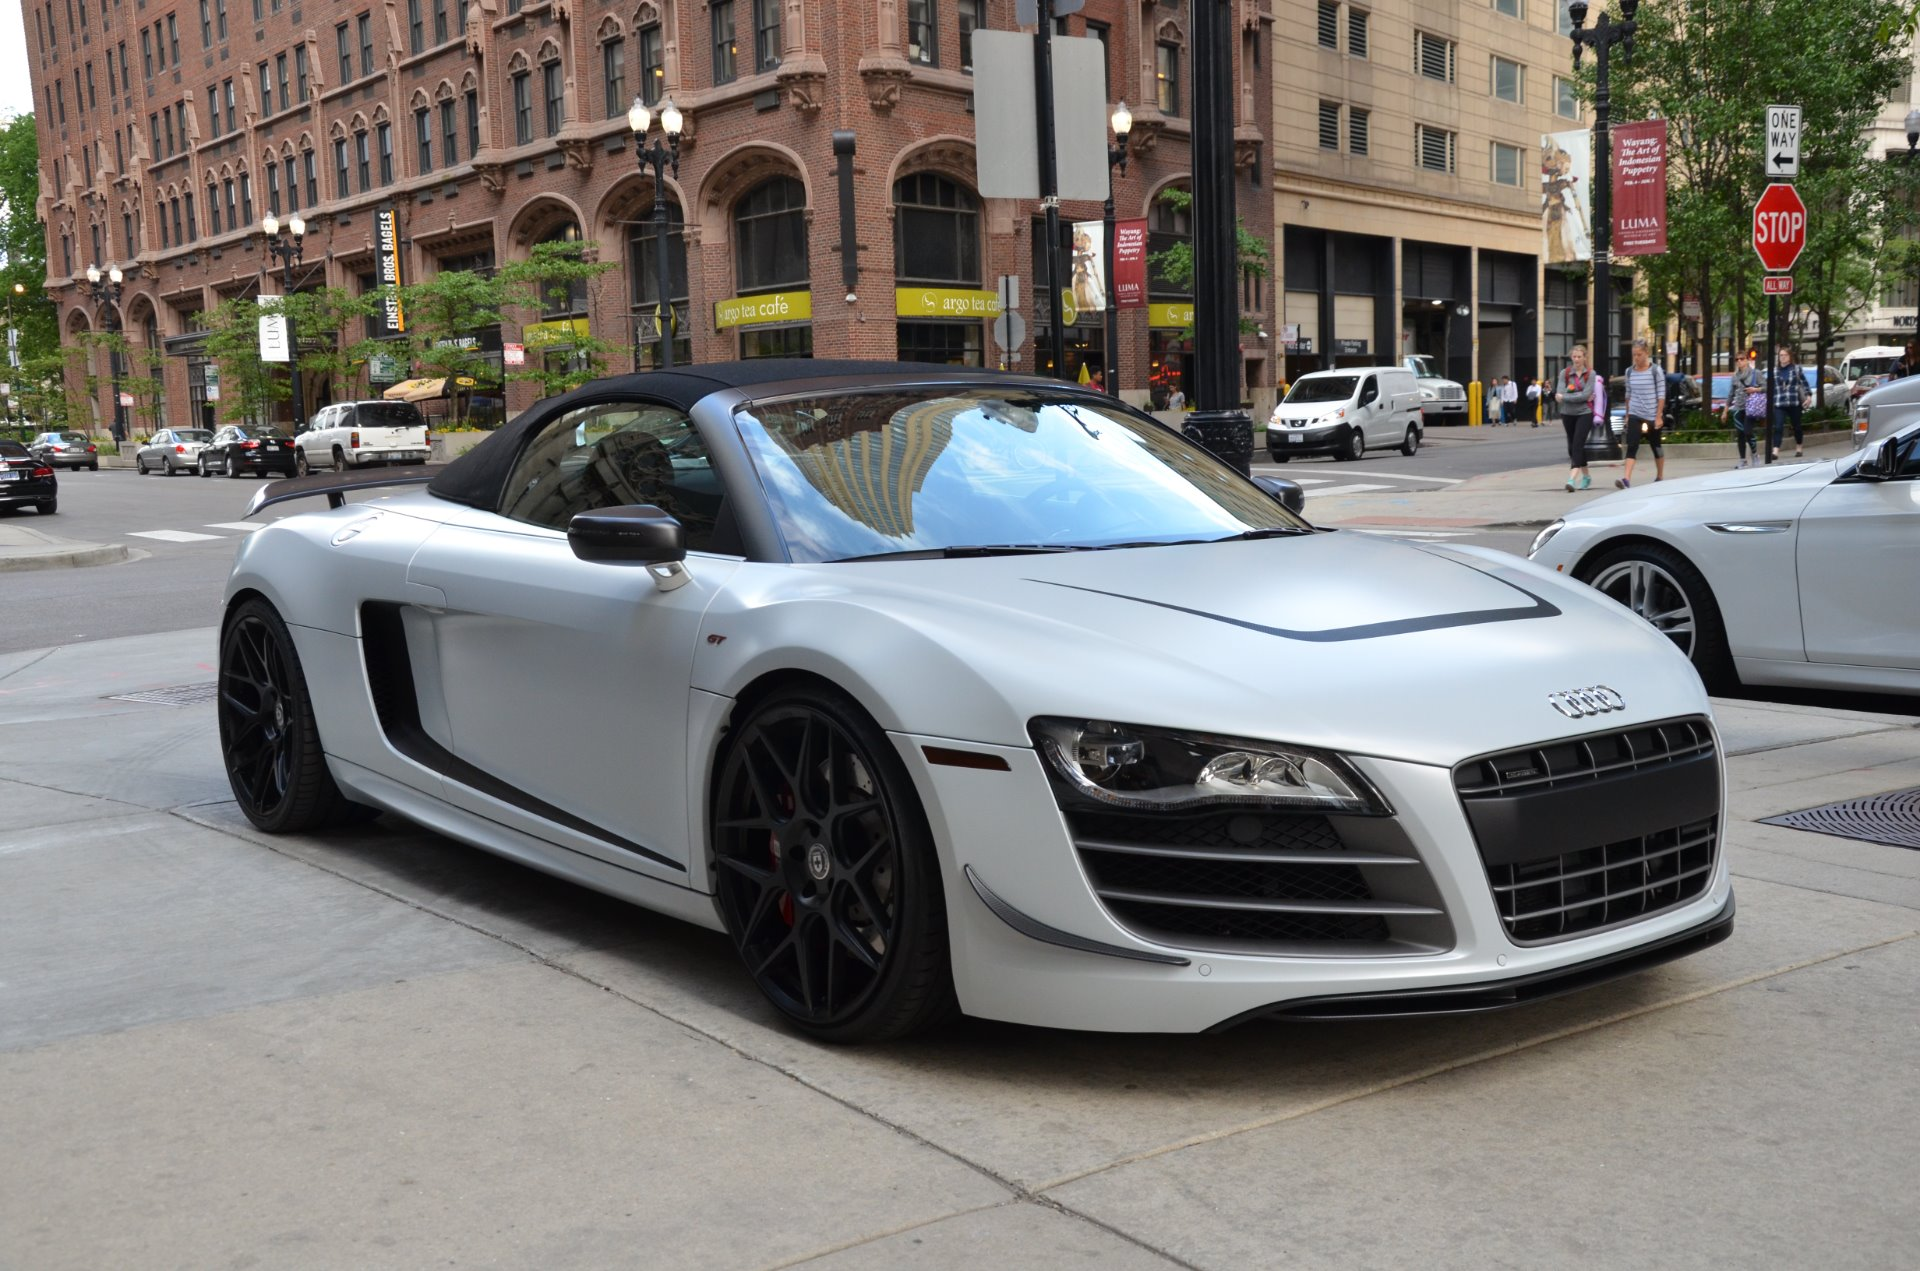 2012 audi r8 gt 5 2 quattro spyder stock l373b for sale. Black Bedroom Furniture Sets. Home Design Ideas